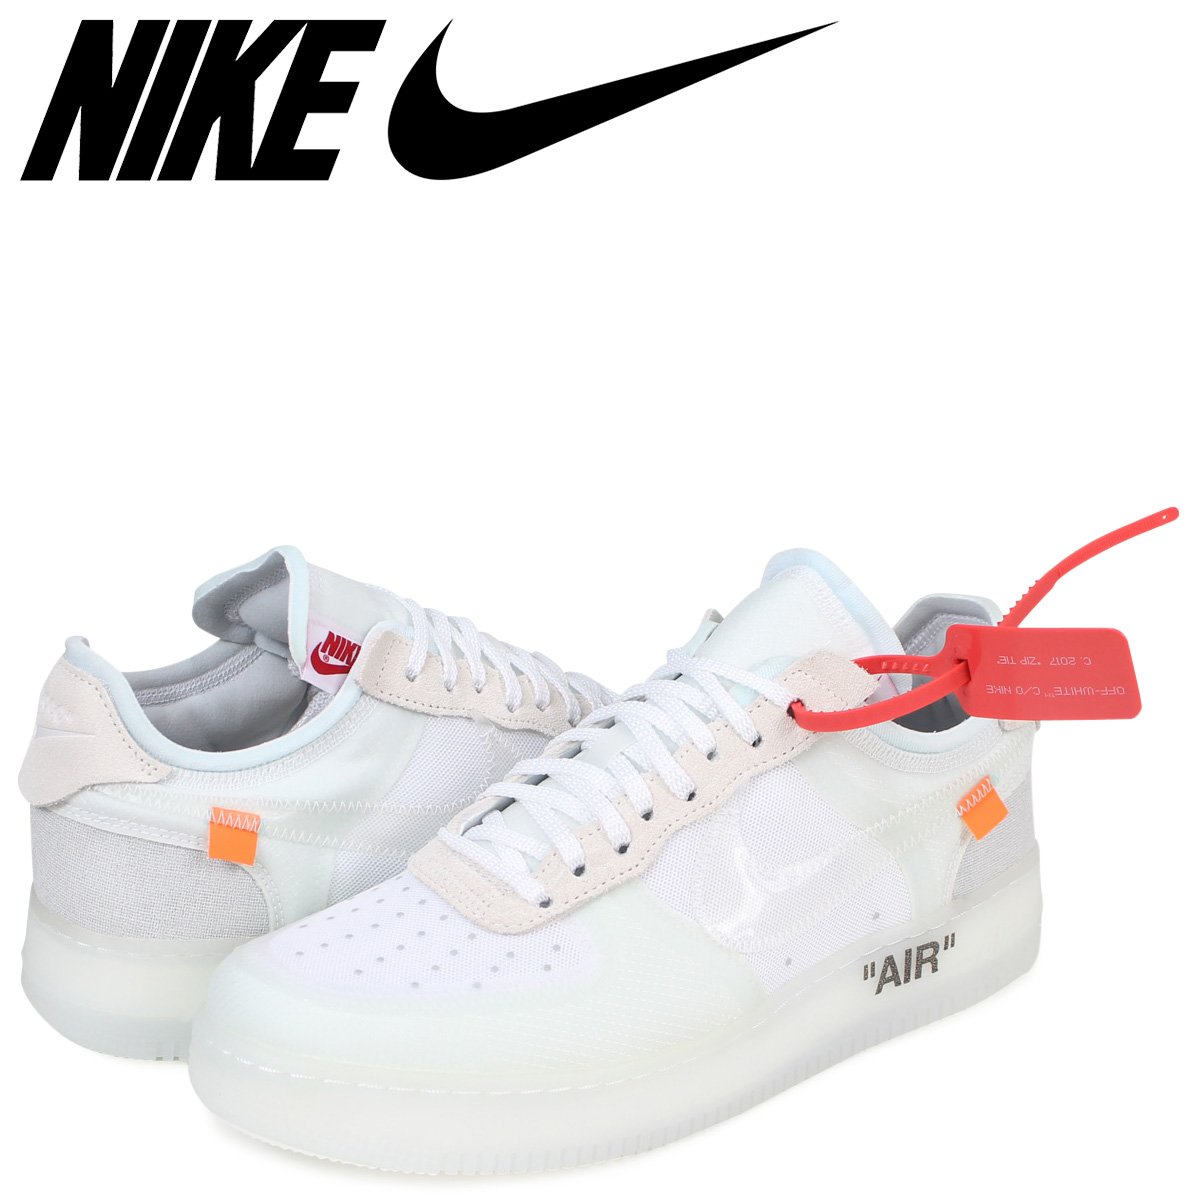 NIKE Nike OFF WHITE air force 1 sneakers AIR FORCE 1 LOW VIRGIL ABLOH THE TEN AO4606 100 men white white